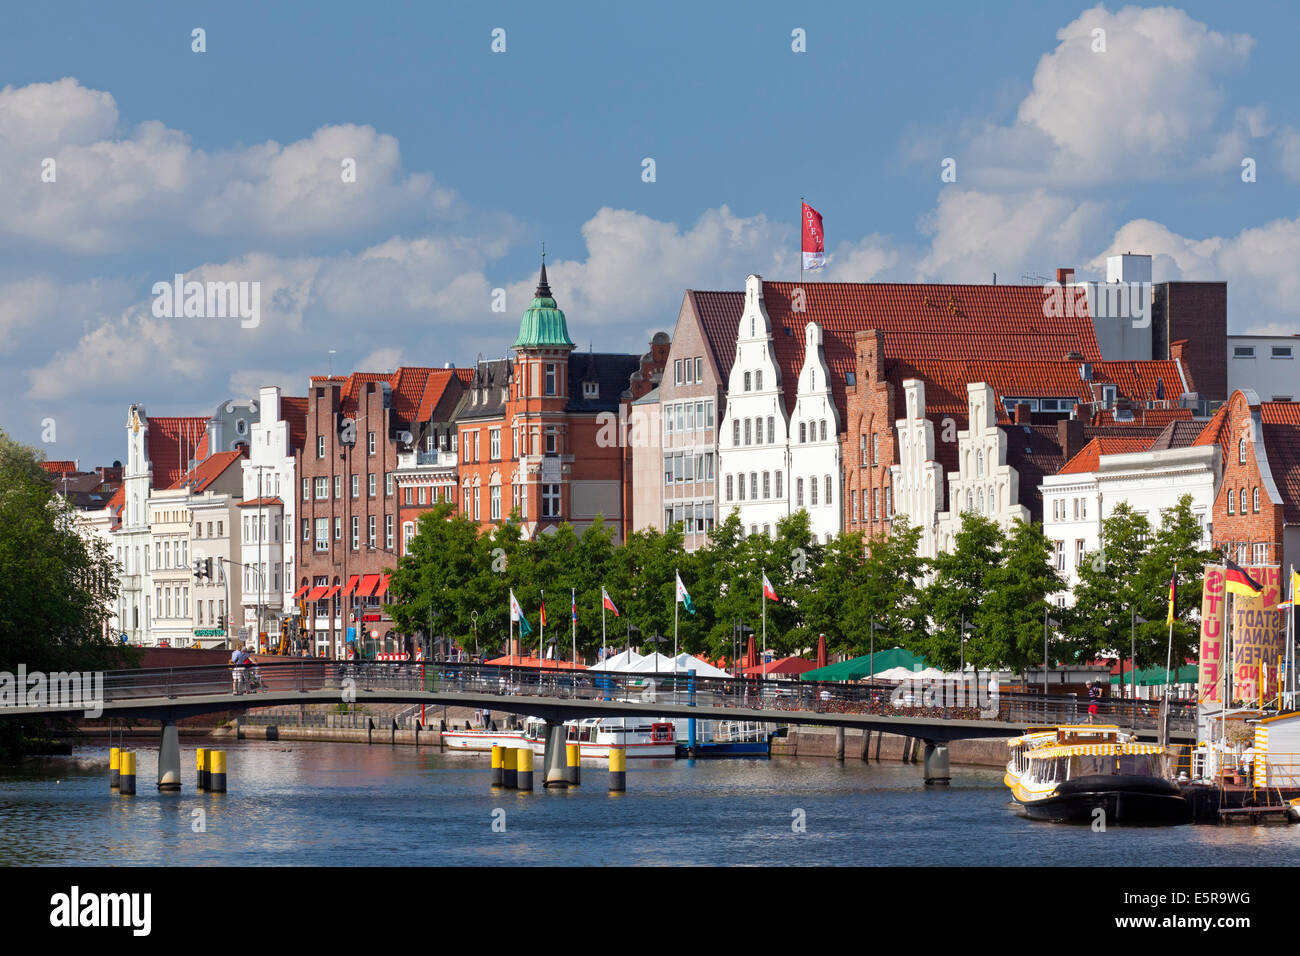 View over the river Trave at Obertrave in the Hanseatic town Lübeck, Schleswig-Holstein, Germany - Stock Image